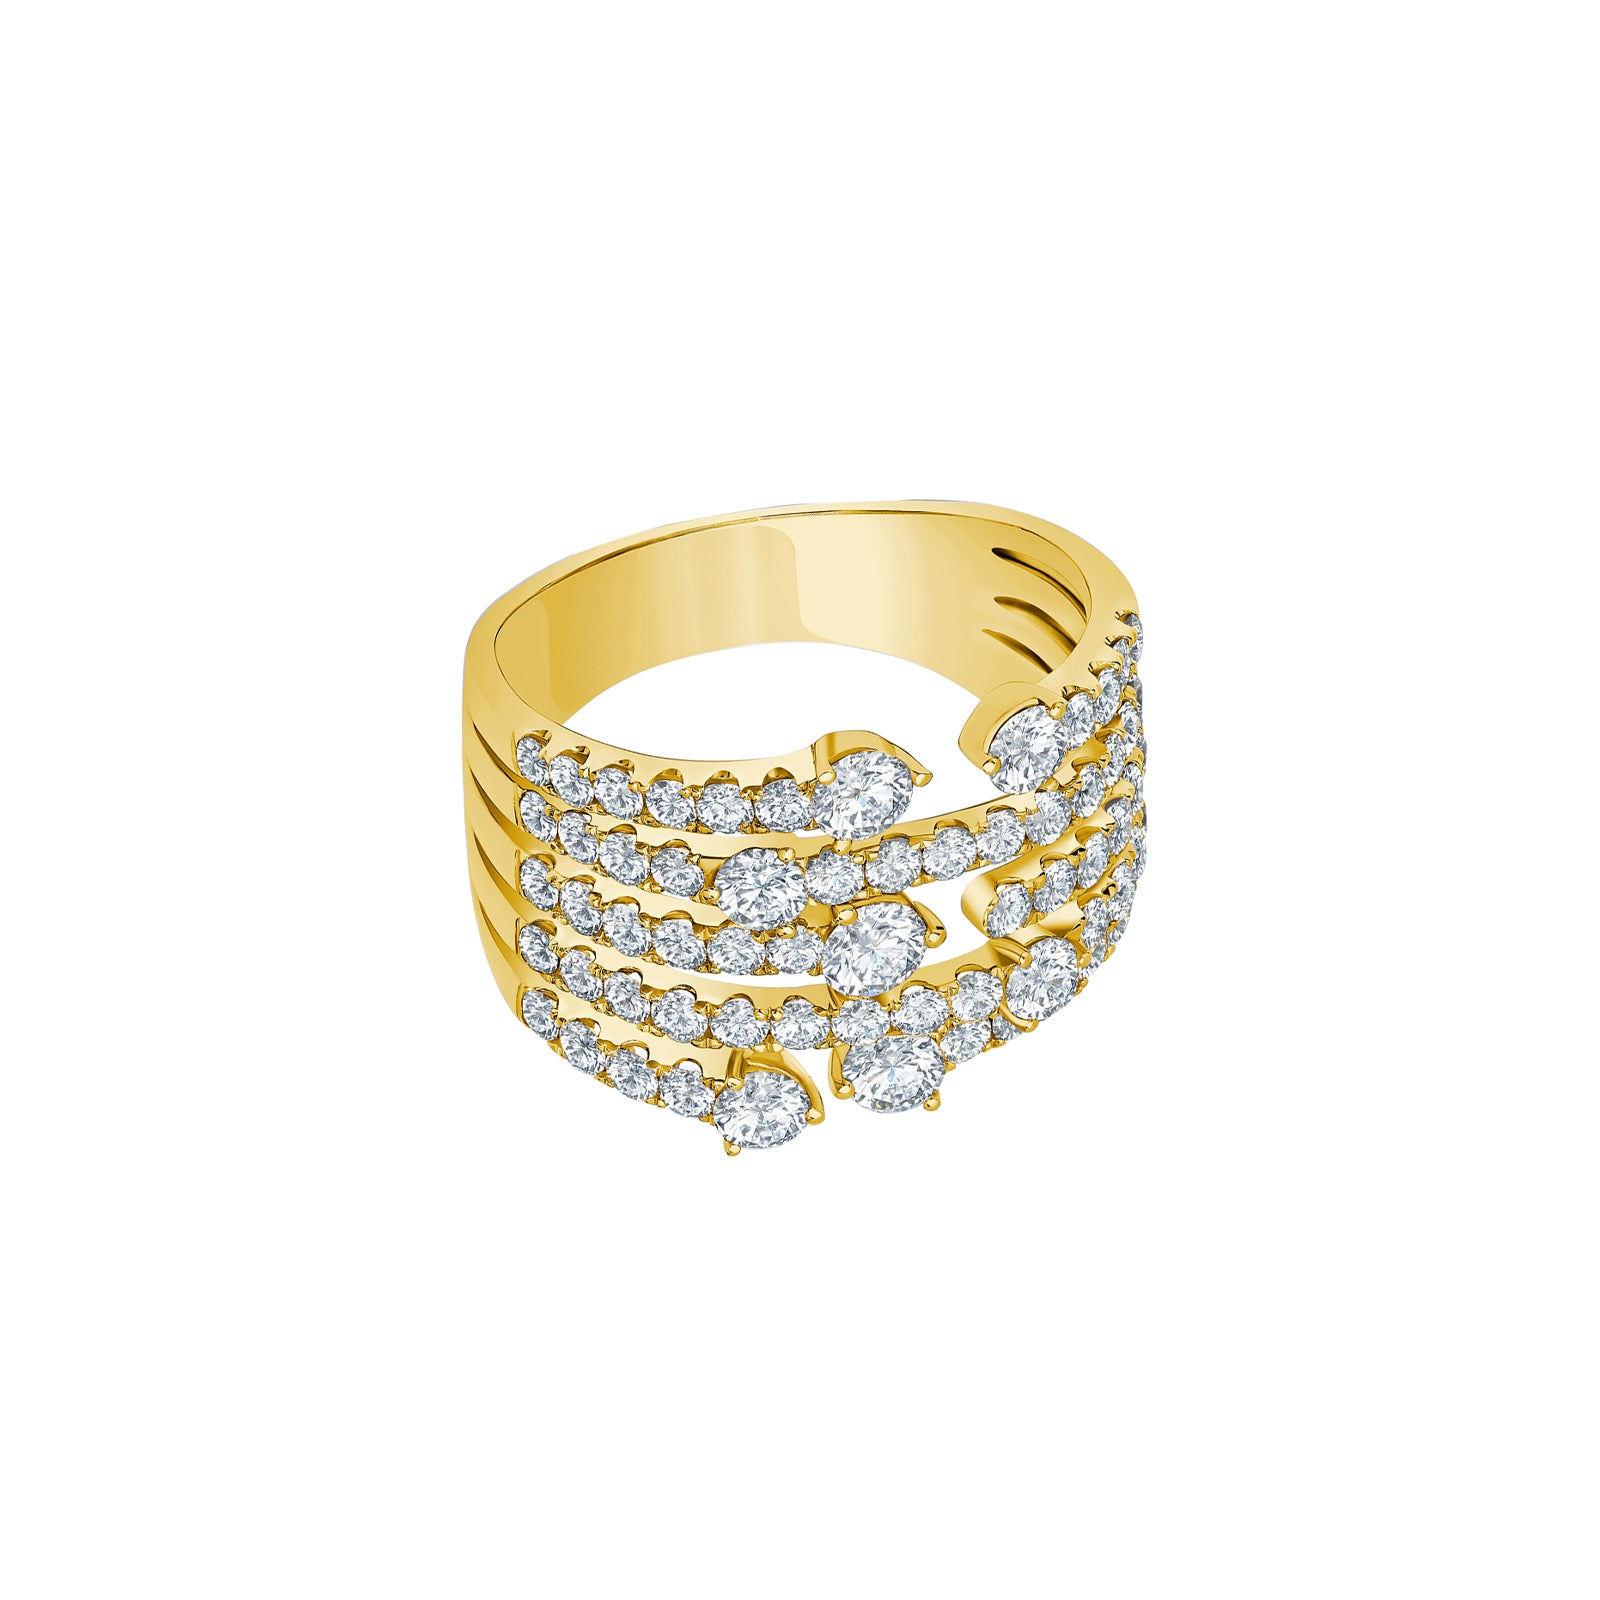 Graziela Medium Cage Diamond Ring - Yellow Gold - Rings - Broken English Jewelry